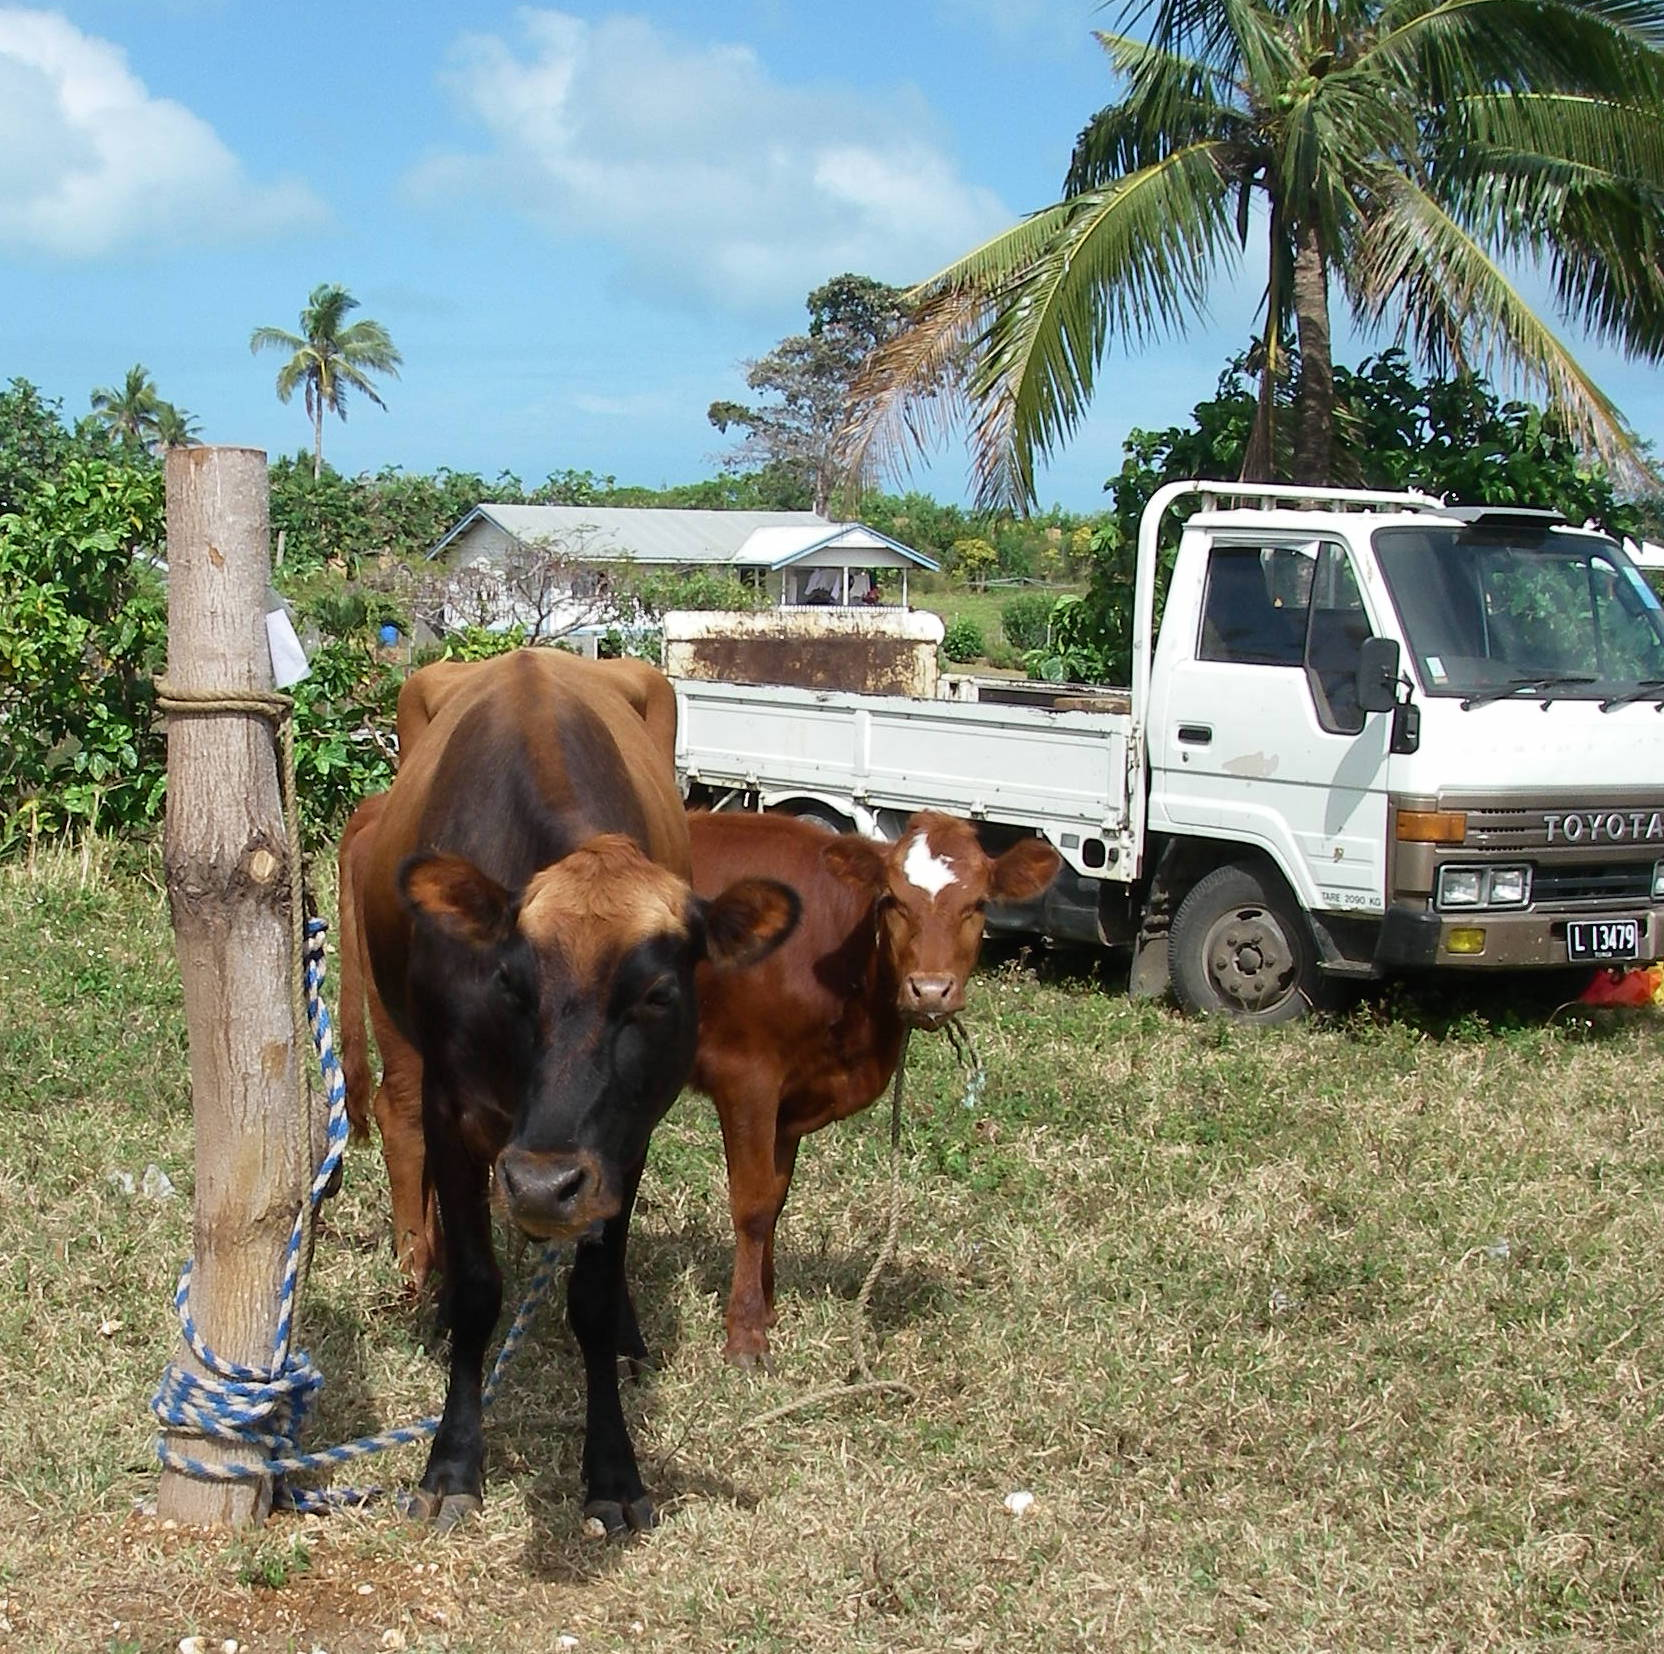 110. These handsome bovines thank you for learning about their agricultural show, and hope you visit them someday in Tonga!